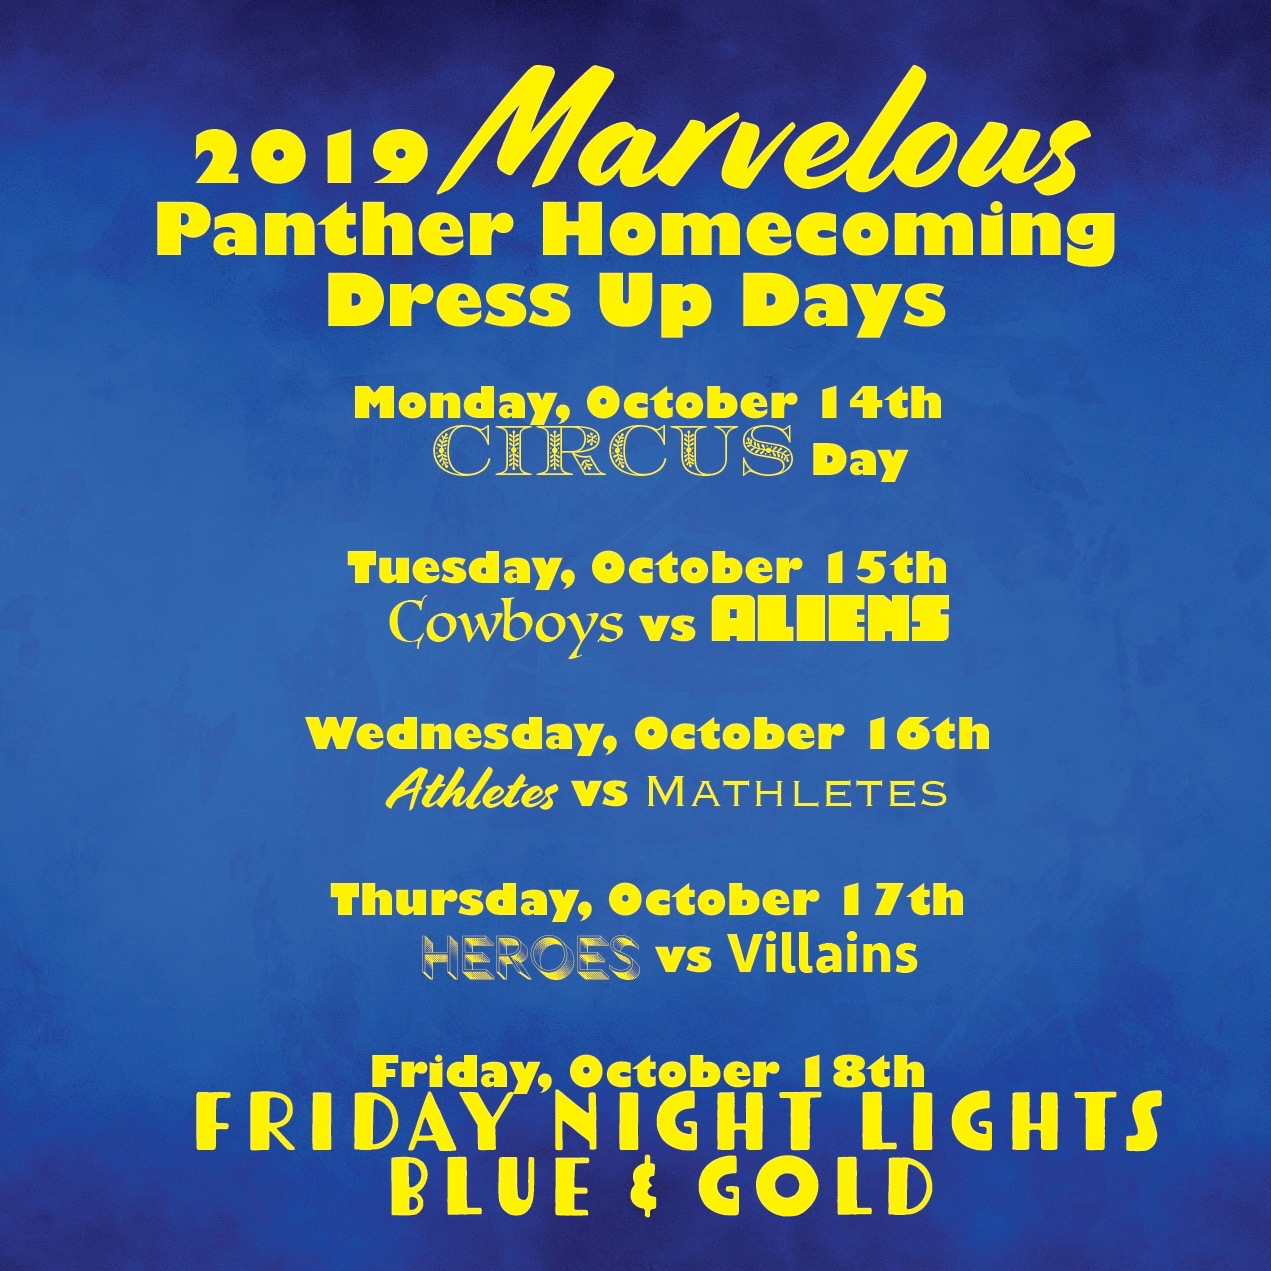 A listing of the dress up days for Panther Homecoming.